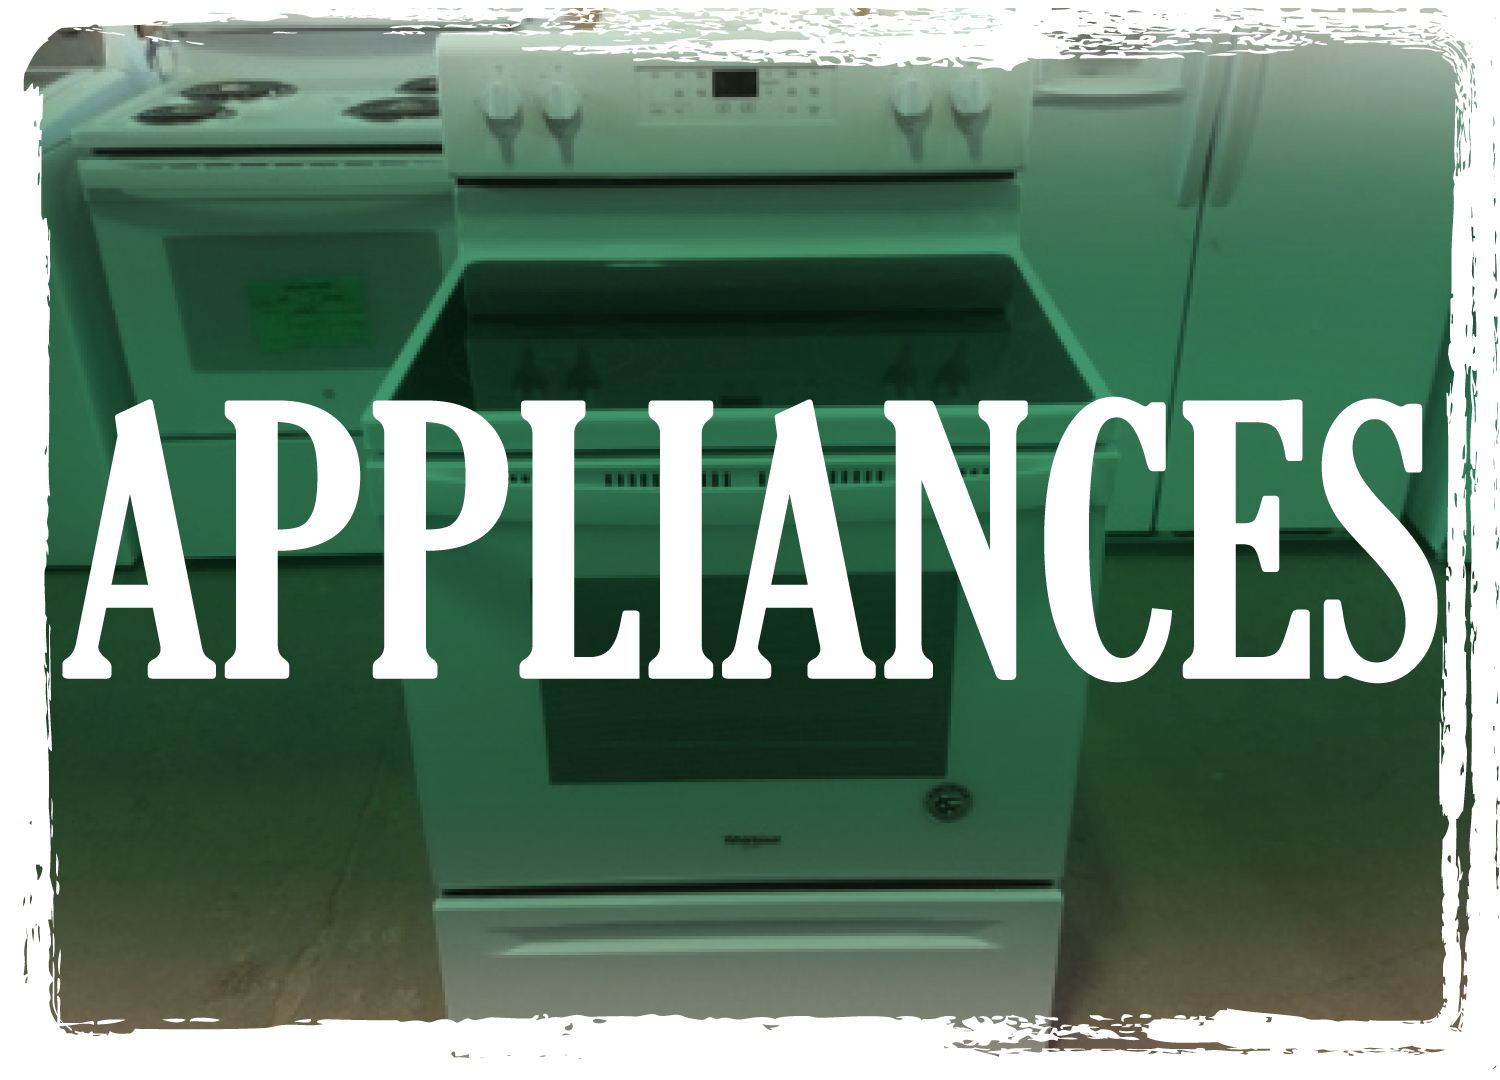 Appliances Stock Image - Click for guidelines